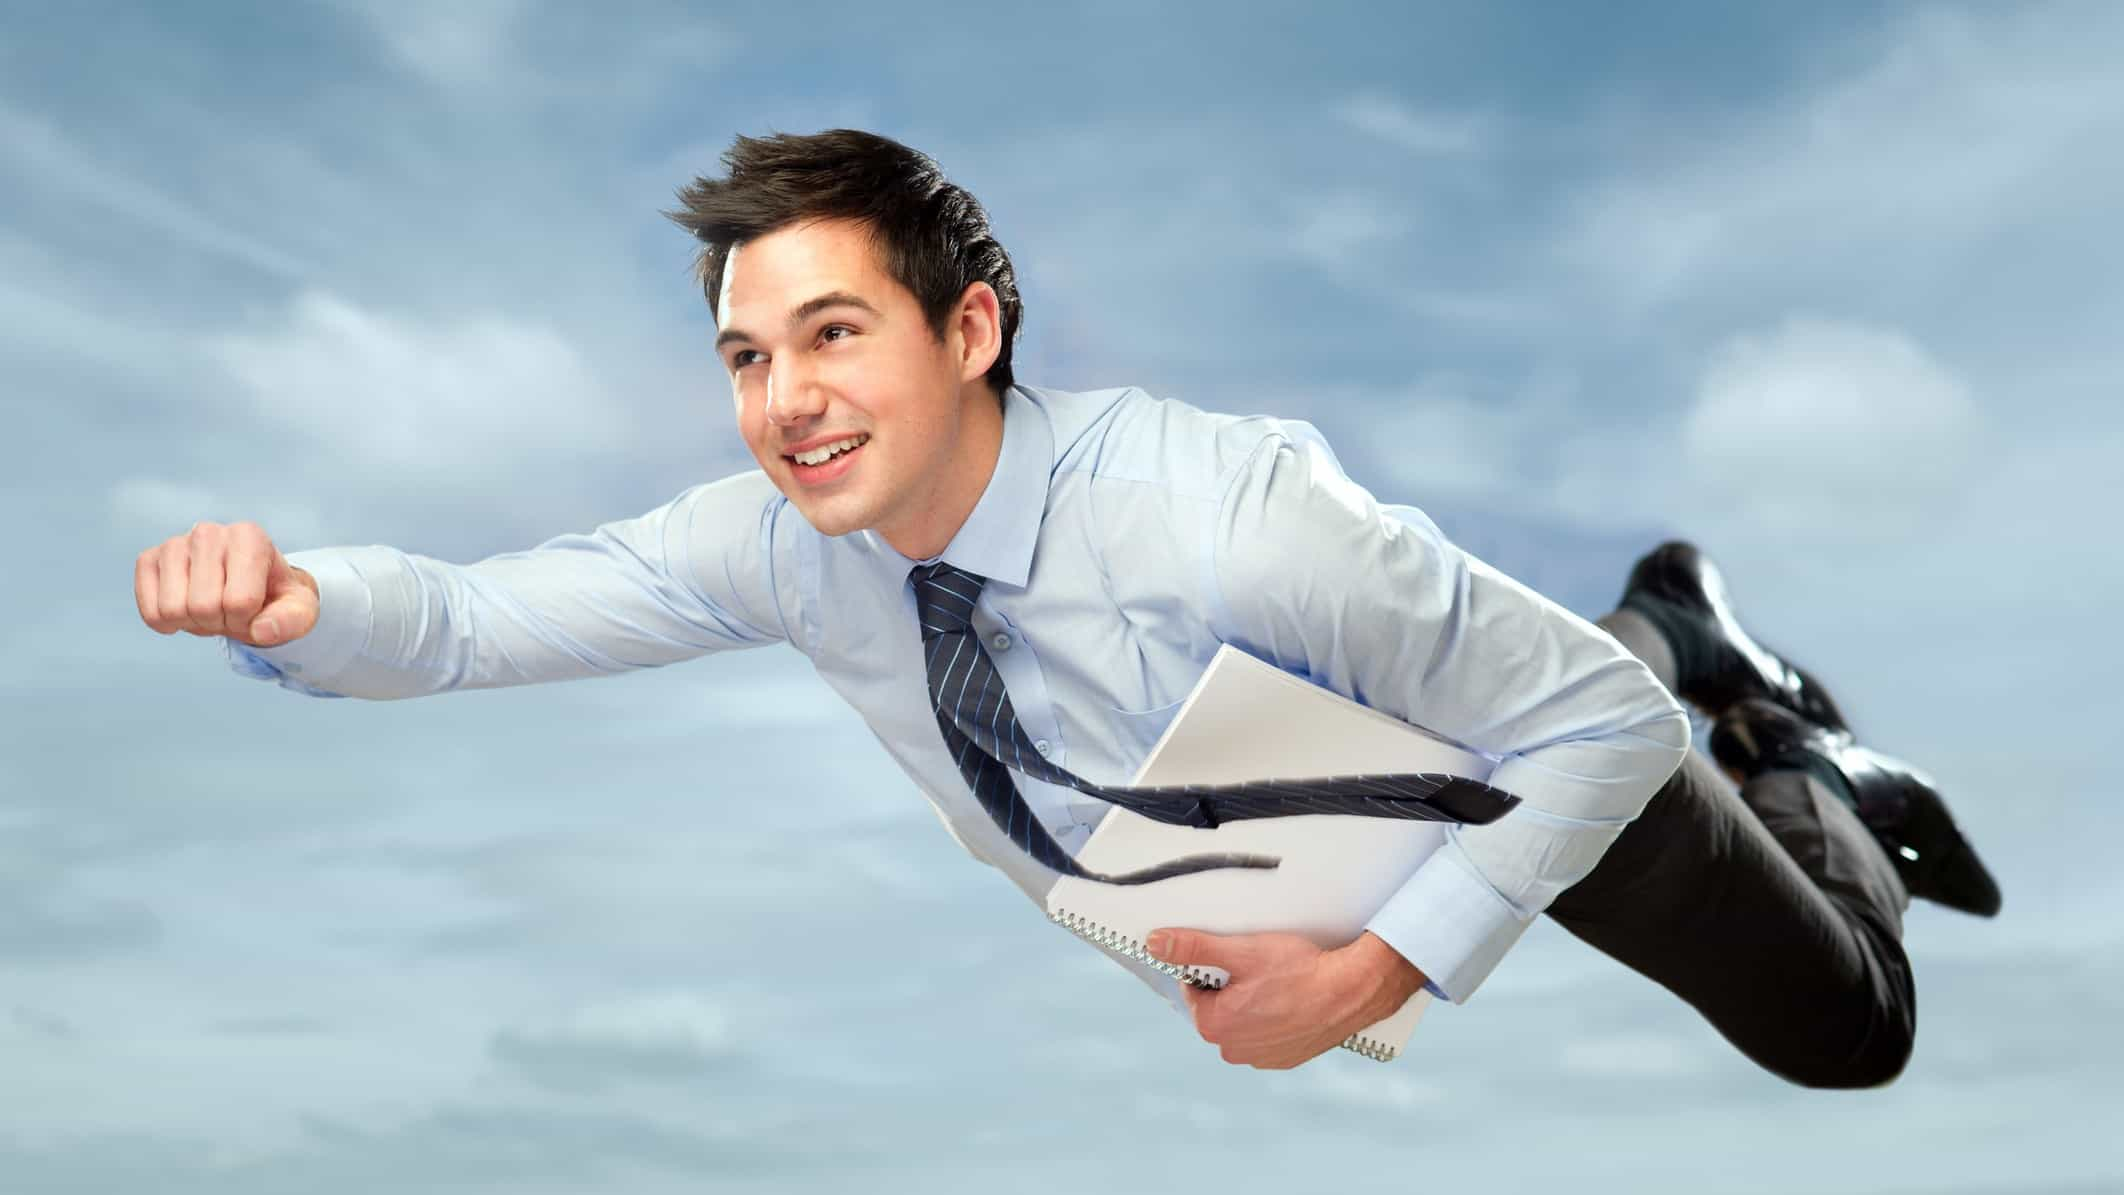 flying asx share price represented by businessman flying through the air